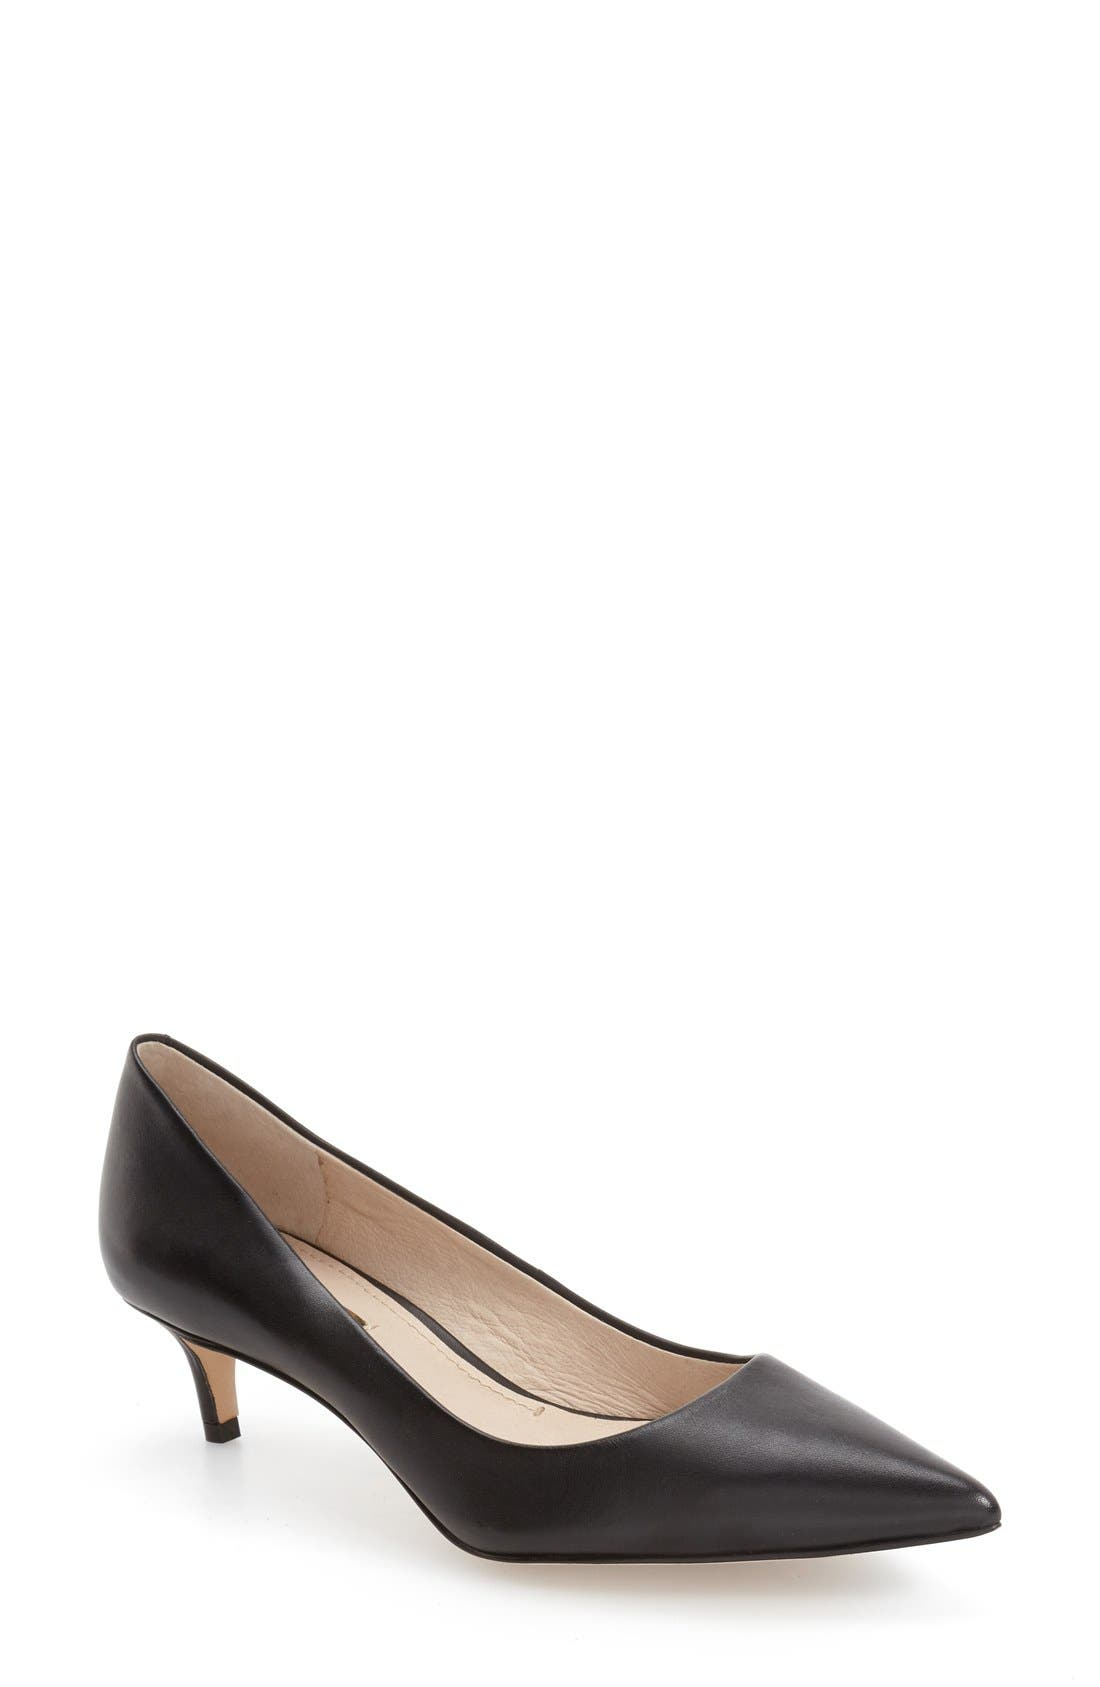 Louise et Cie Jacoba Kitten Heel Pump (Women)